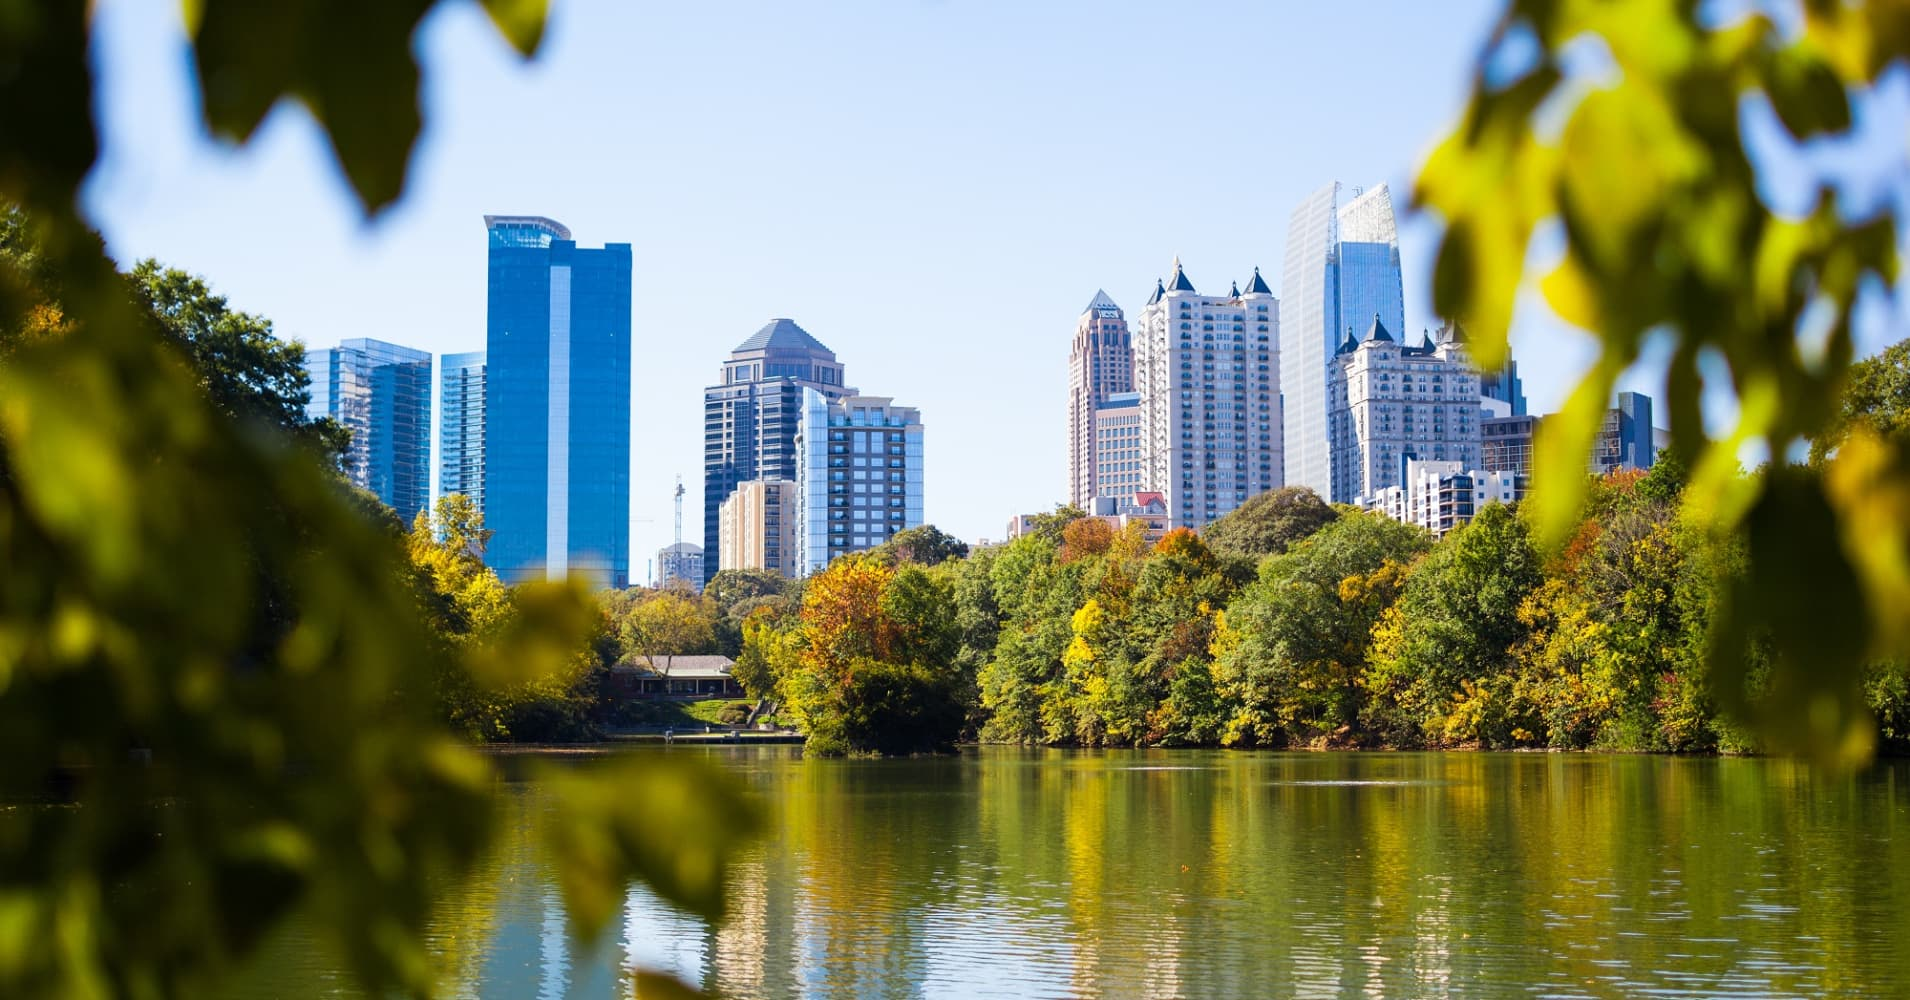 Atlanta reflected in the lake of Piedmont Park.